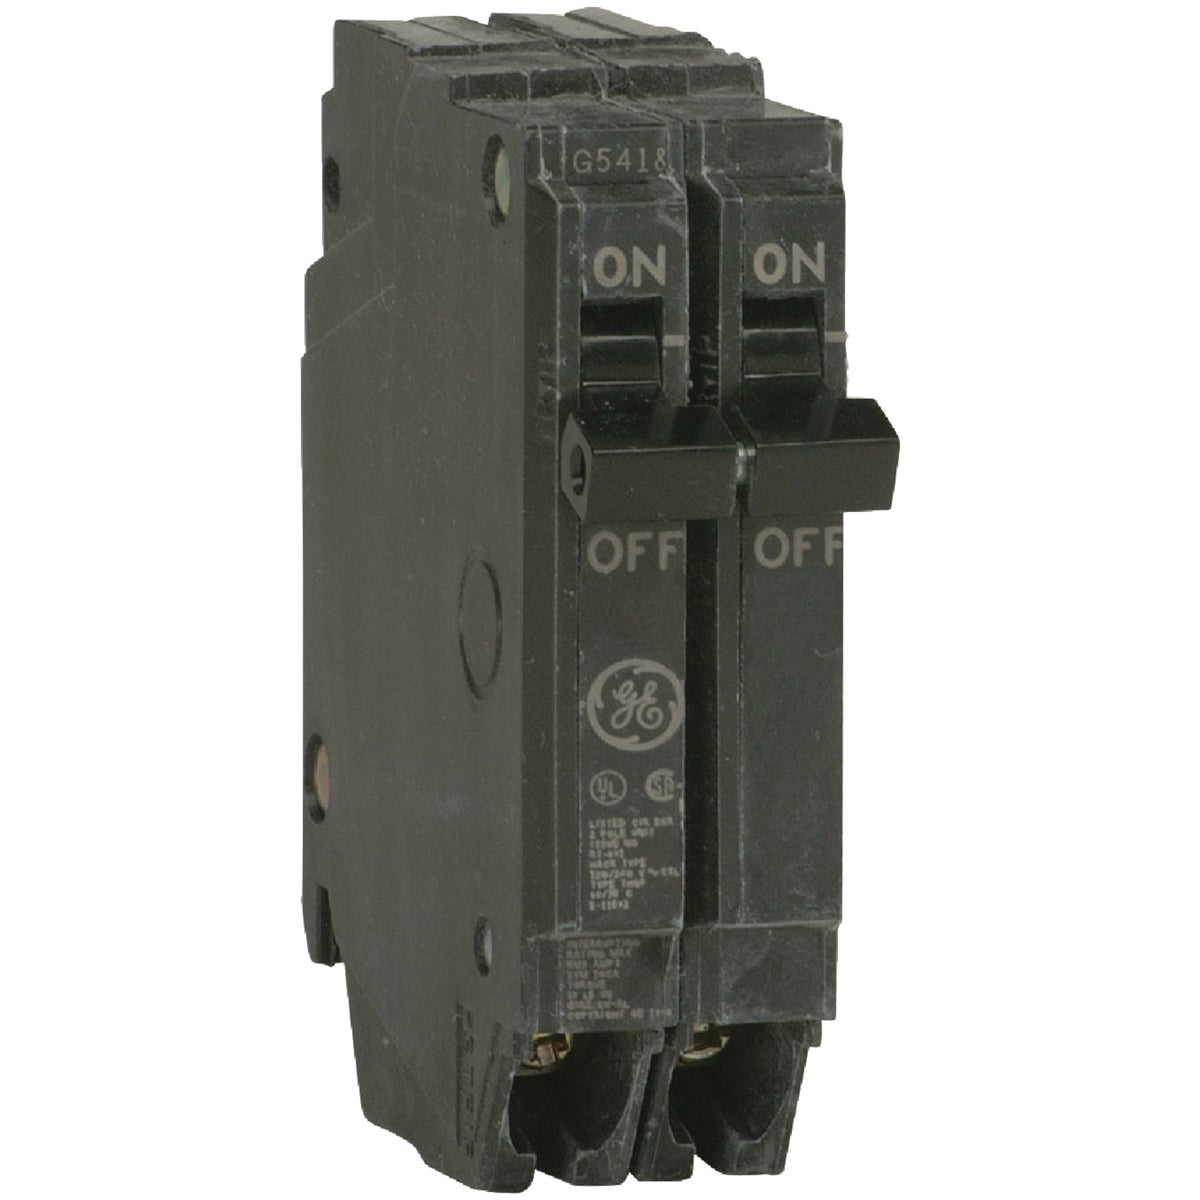 20A 2P CIRCUIT BREAKER - THQP220 by G E Industrial